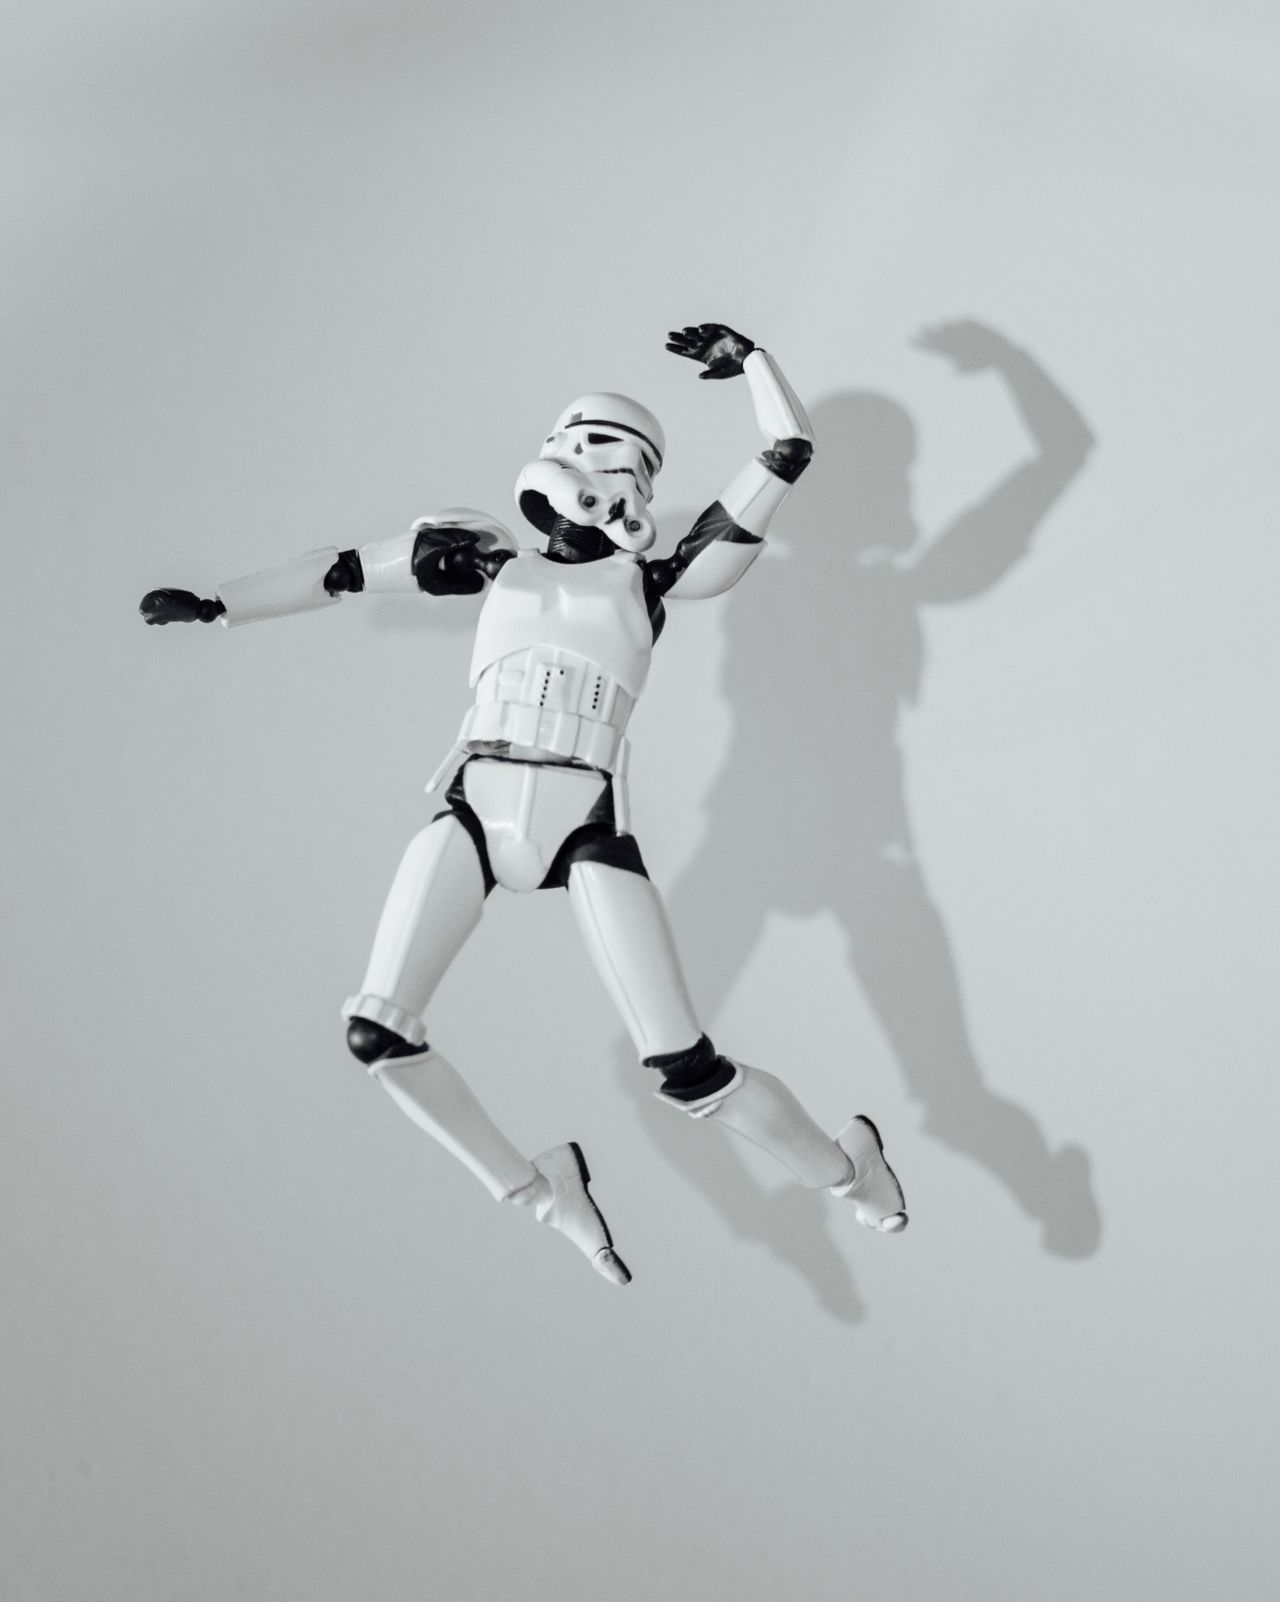 Lets go ! Arms Raised Jumping Studio Shot Shadow Mid-air Childhood White Background One Person Real People Sports Uniform Day Outdoors Sky People Starwars Starwarstoys MayThe4thBeWithYou Stormtrooper Jumpstagram White Color Toyphotography Toys First Eyeem Photo EyeEmNewHere